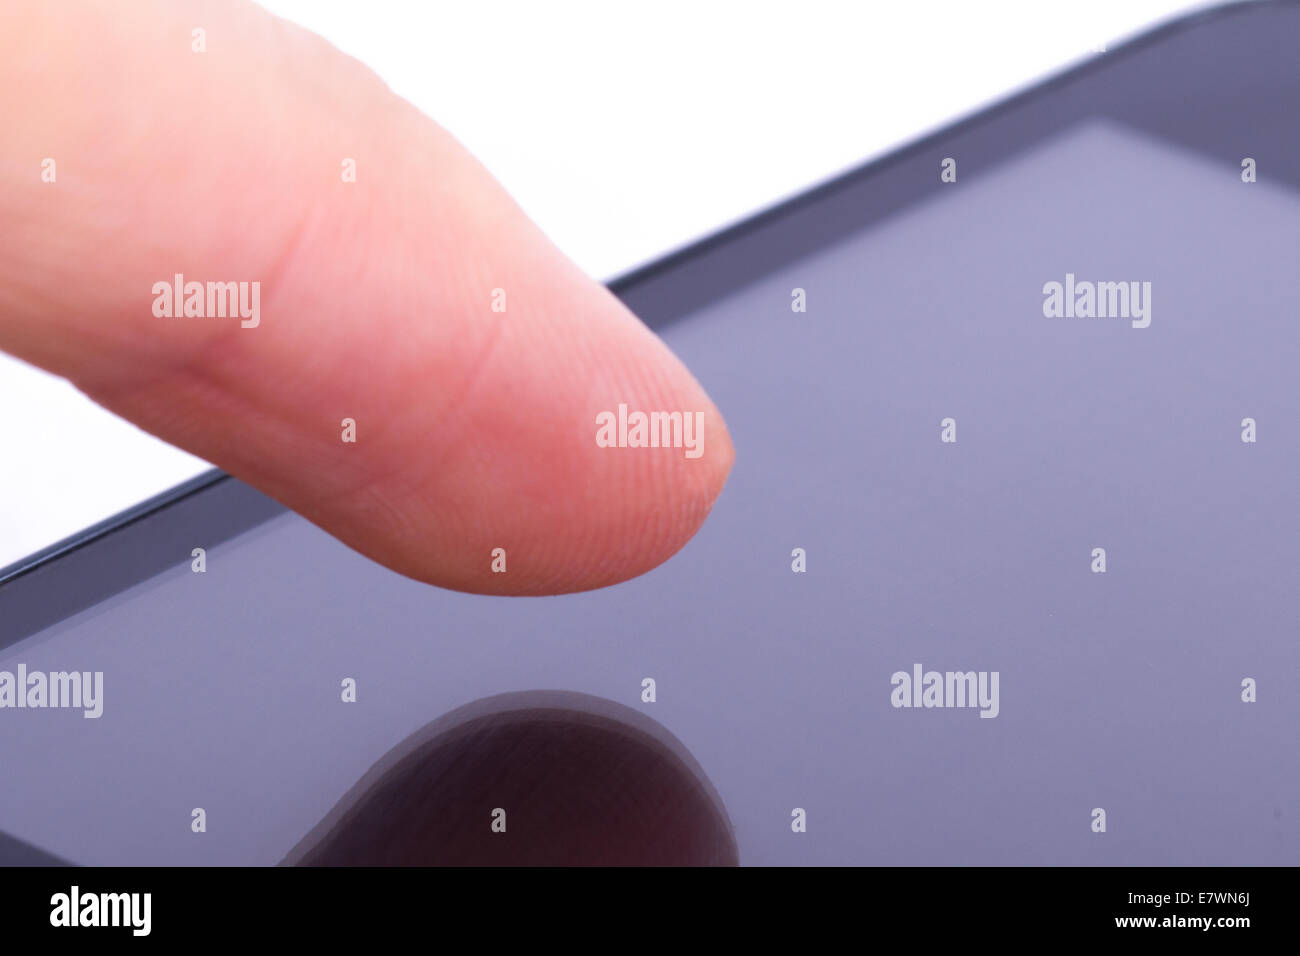 Finger touching blank mobile phone screen on white background. Stock Photo